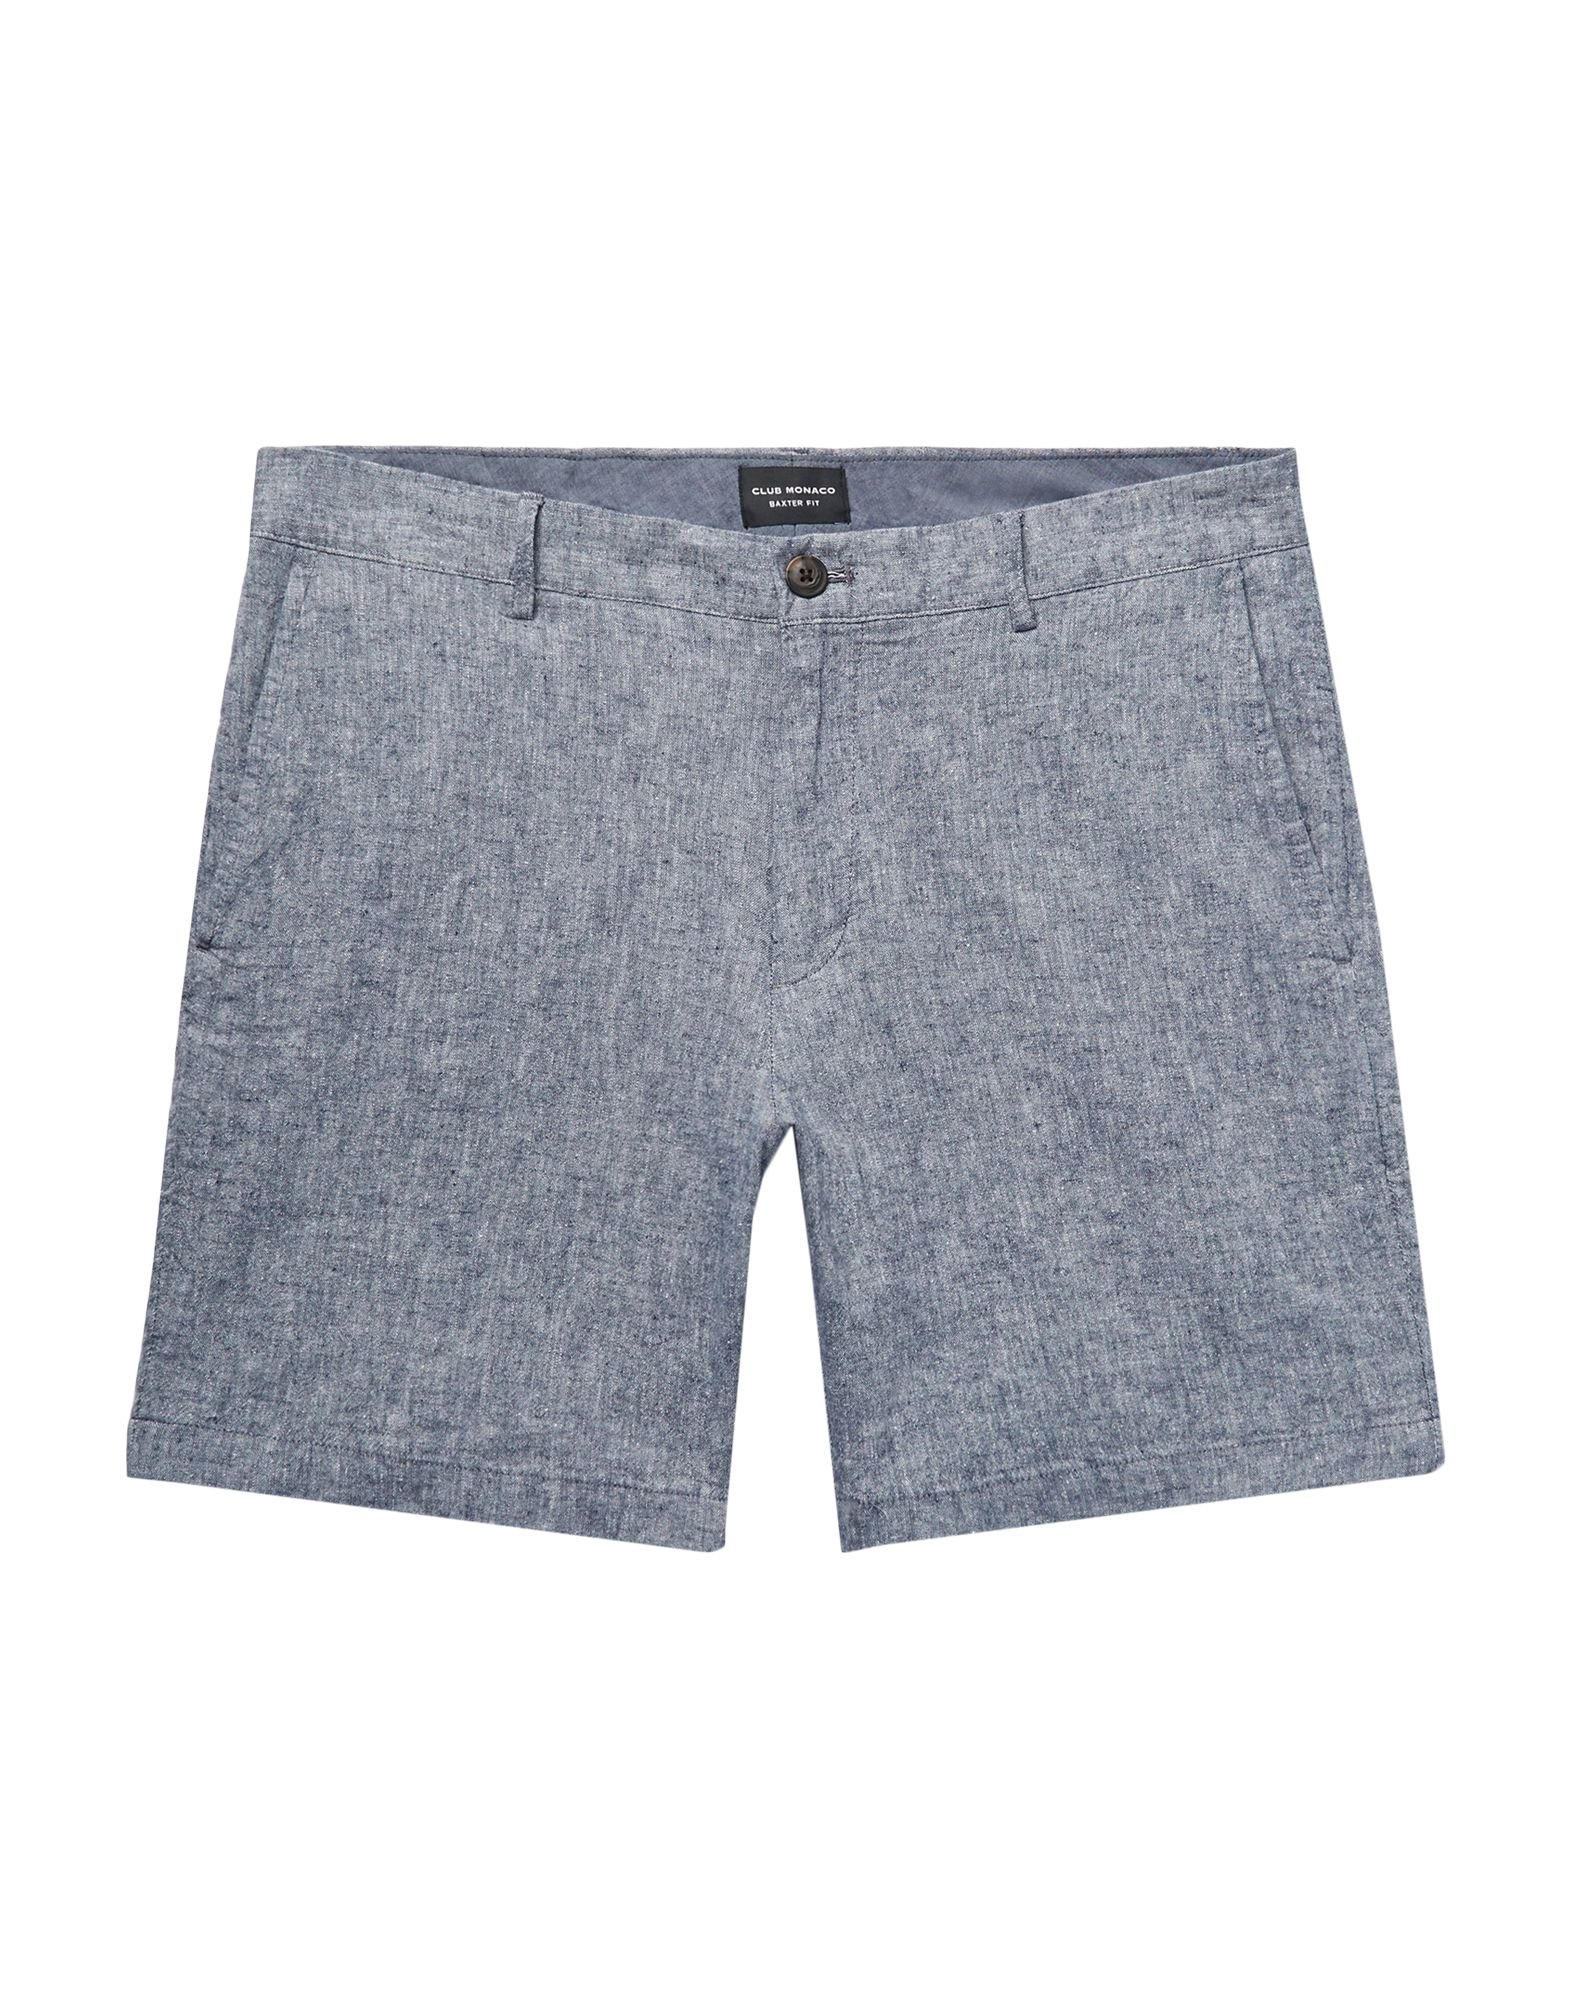 CLUB MONACO Shorts. plain weave, solid color, mid rise, button, zip, multipockets, stretch. 54% Flax, 44% Cotton, 2% Elastane